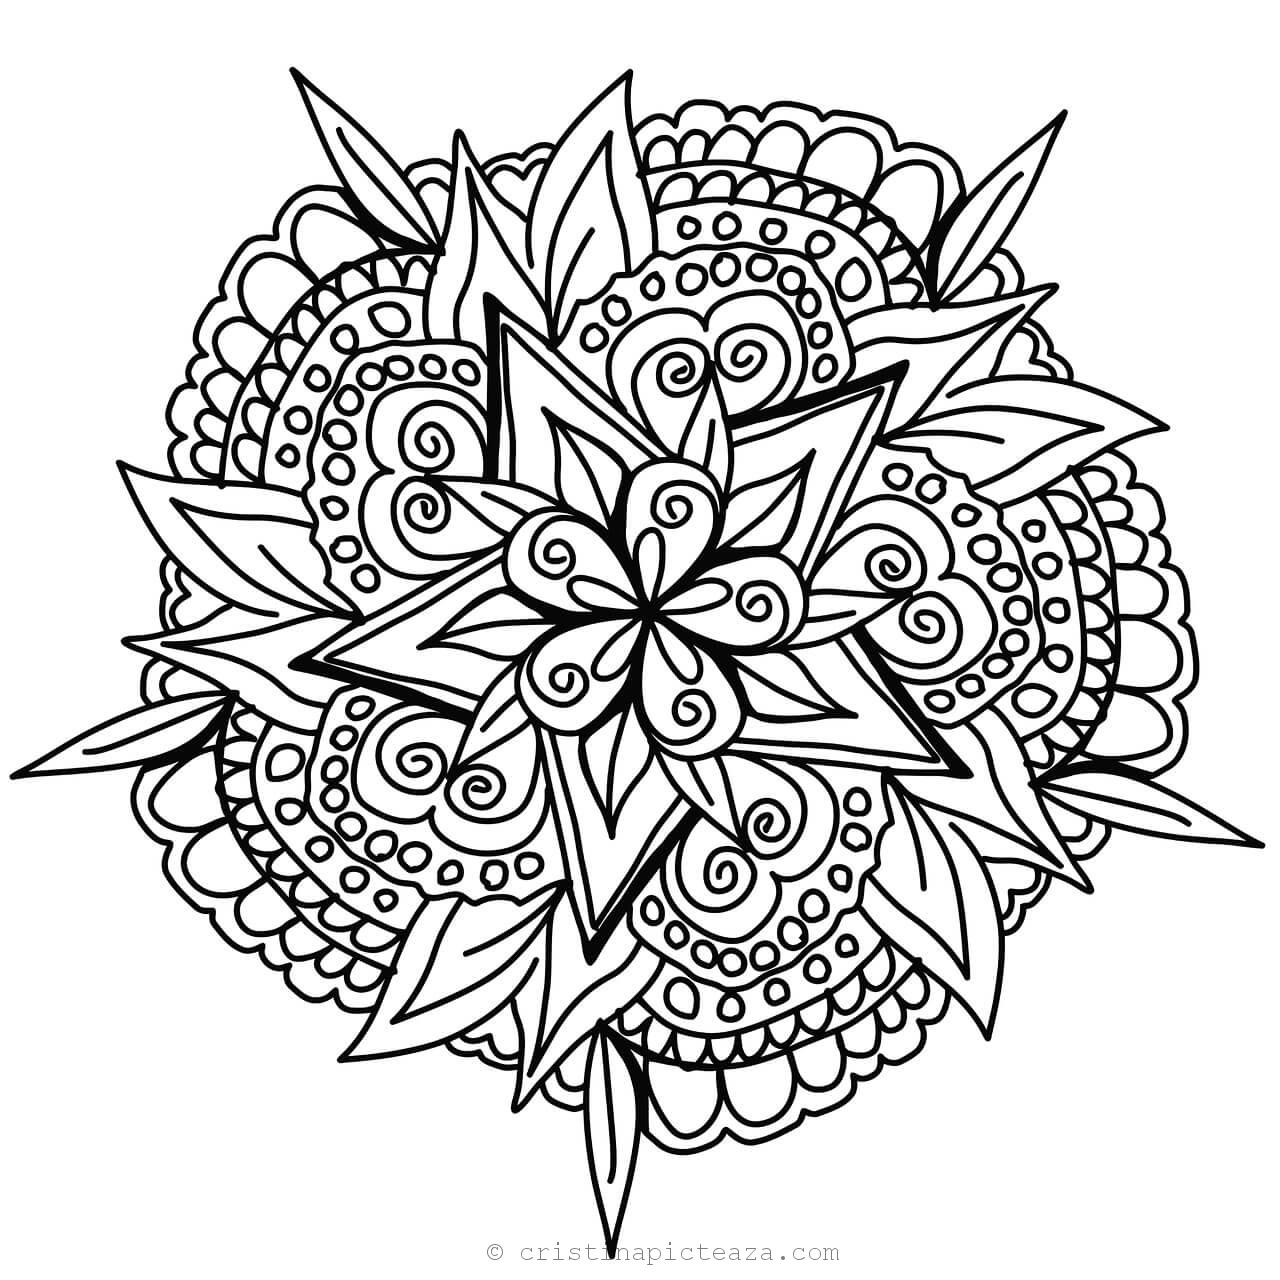 mandala coloring pages for adults mandala for coloring cool coloring pages for adults coloring adults for pages mandala